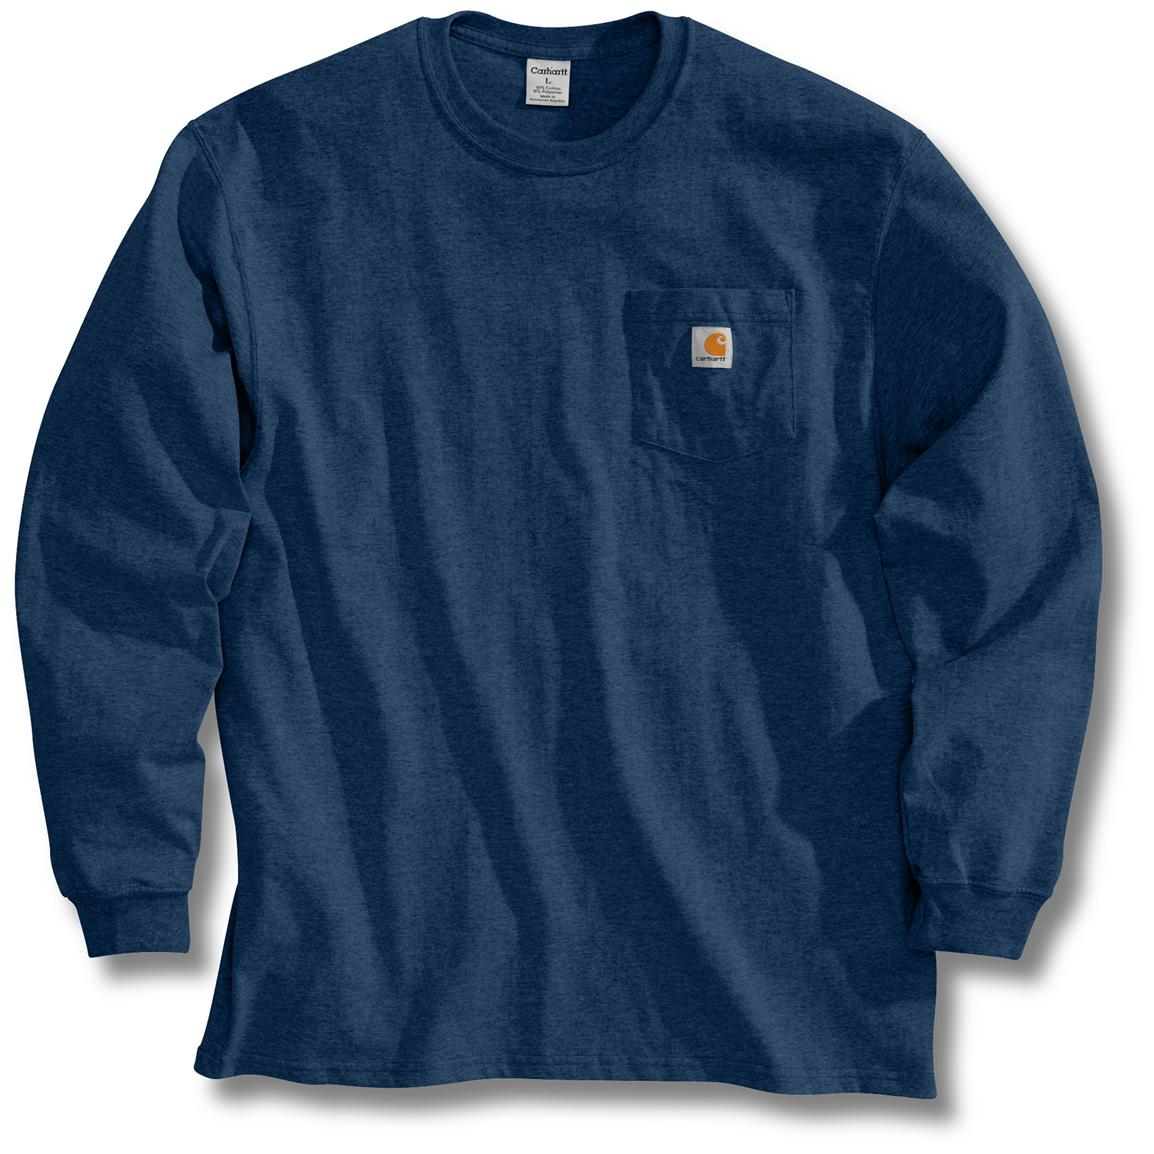 Men's Carhartt Workwear Long-Sleeve Pocket T-Shirt, Dark Blue